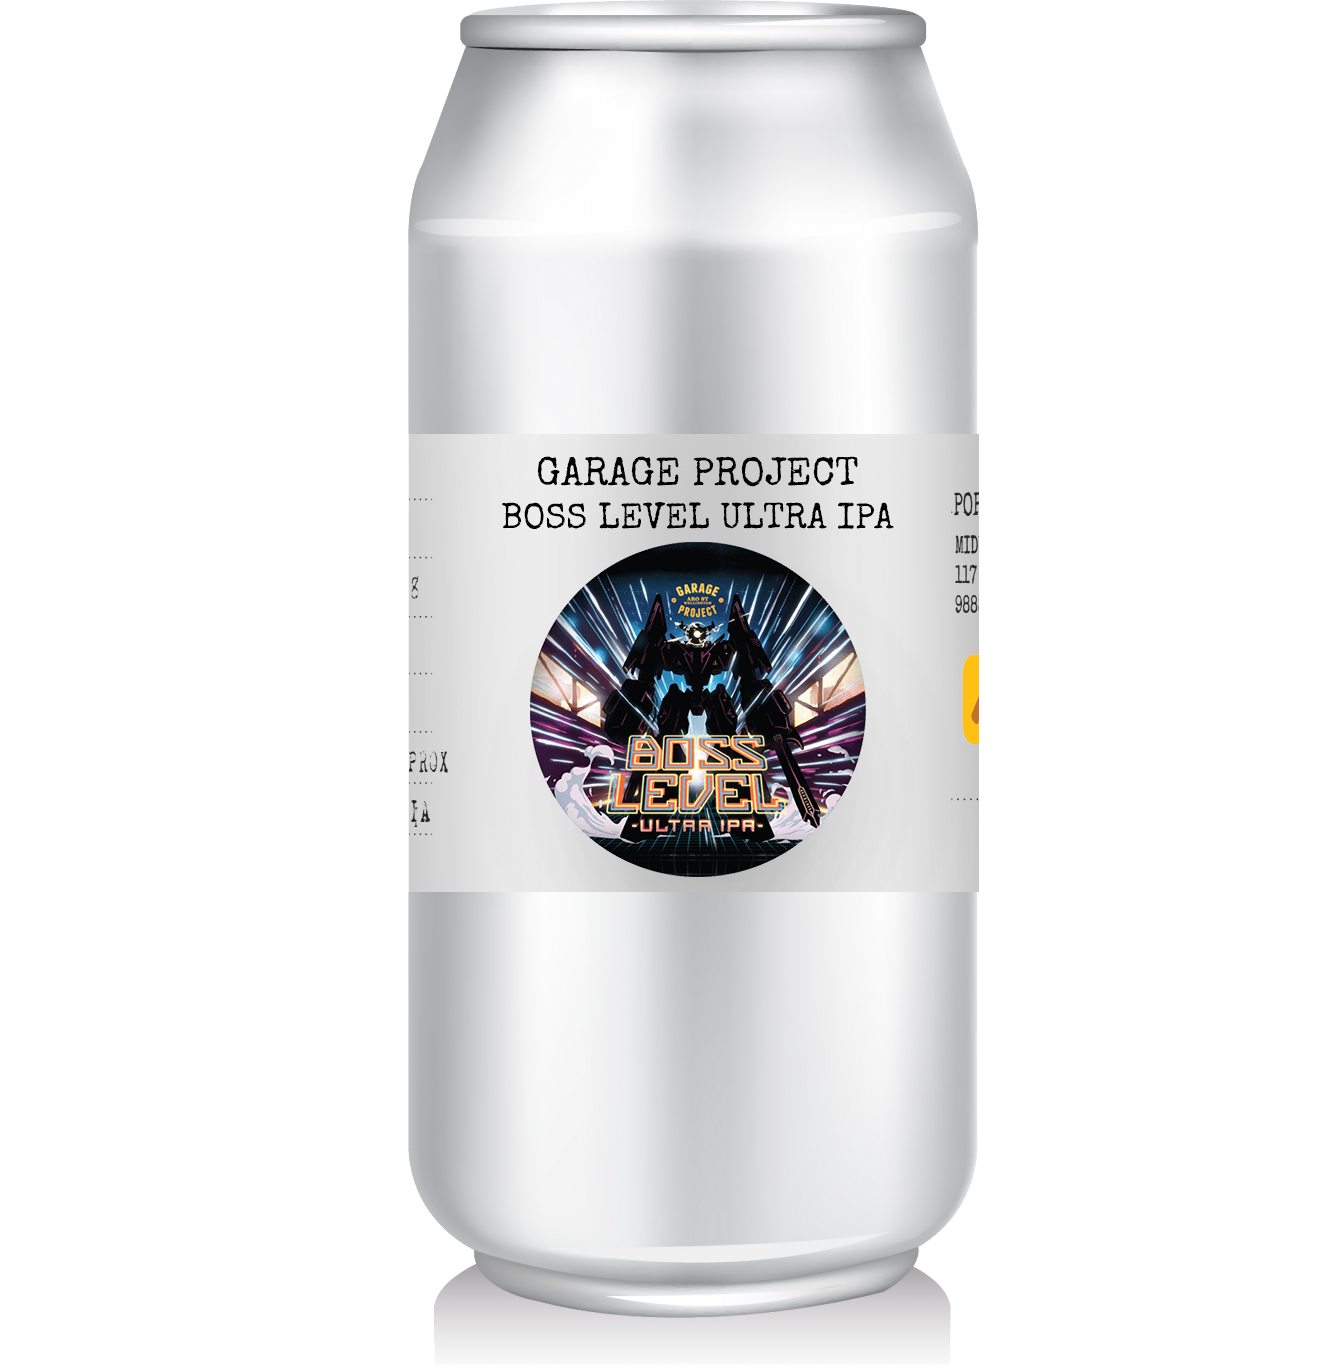 Garage Project - Ultra IPA   This is Ultra IPA - Boss Level. With 5 different US hop varieties, 100IBU and a massive malt grist to match - it's a can load of weaponised hop firepower!   Whilst canning Boss Level, our very own boss Ross taste tested and gave the boss tick of approval!